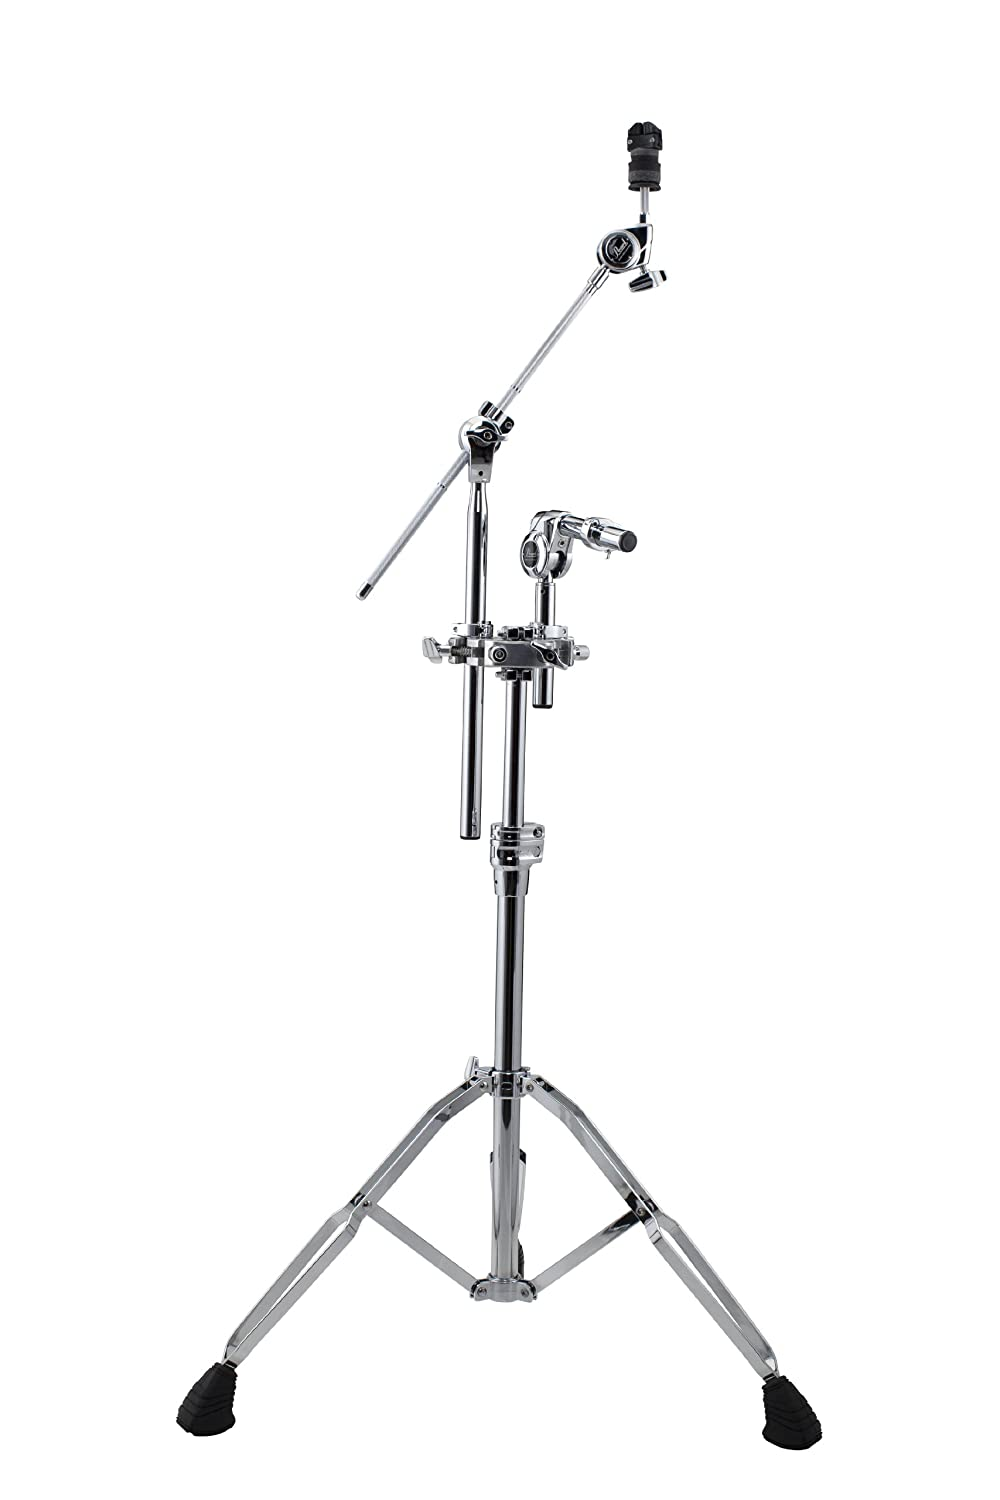 Pearl TC1030 Tom/Boom Stand, New Gyro Lock, Th1030S and New Gyro Lock Ch1030 Pearl Corporation